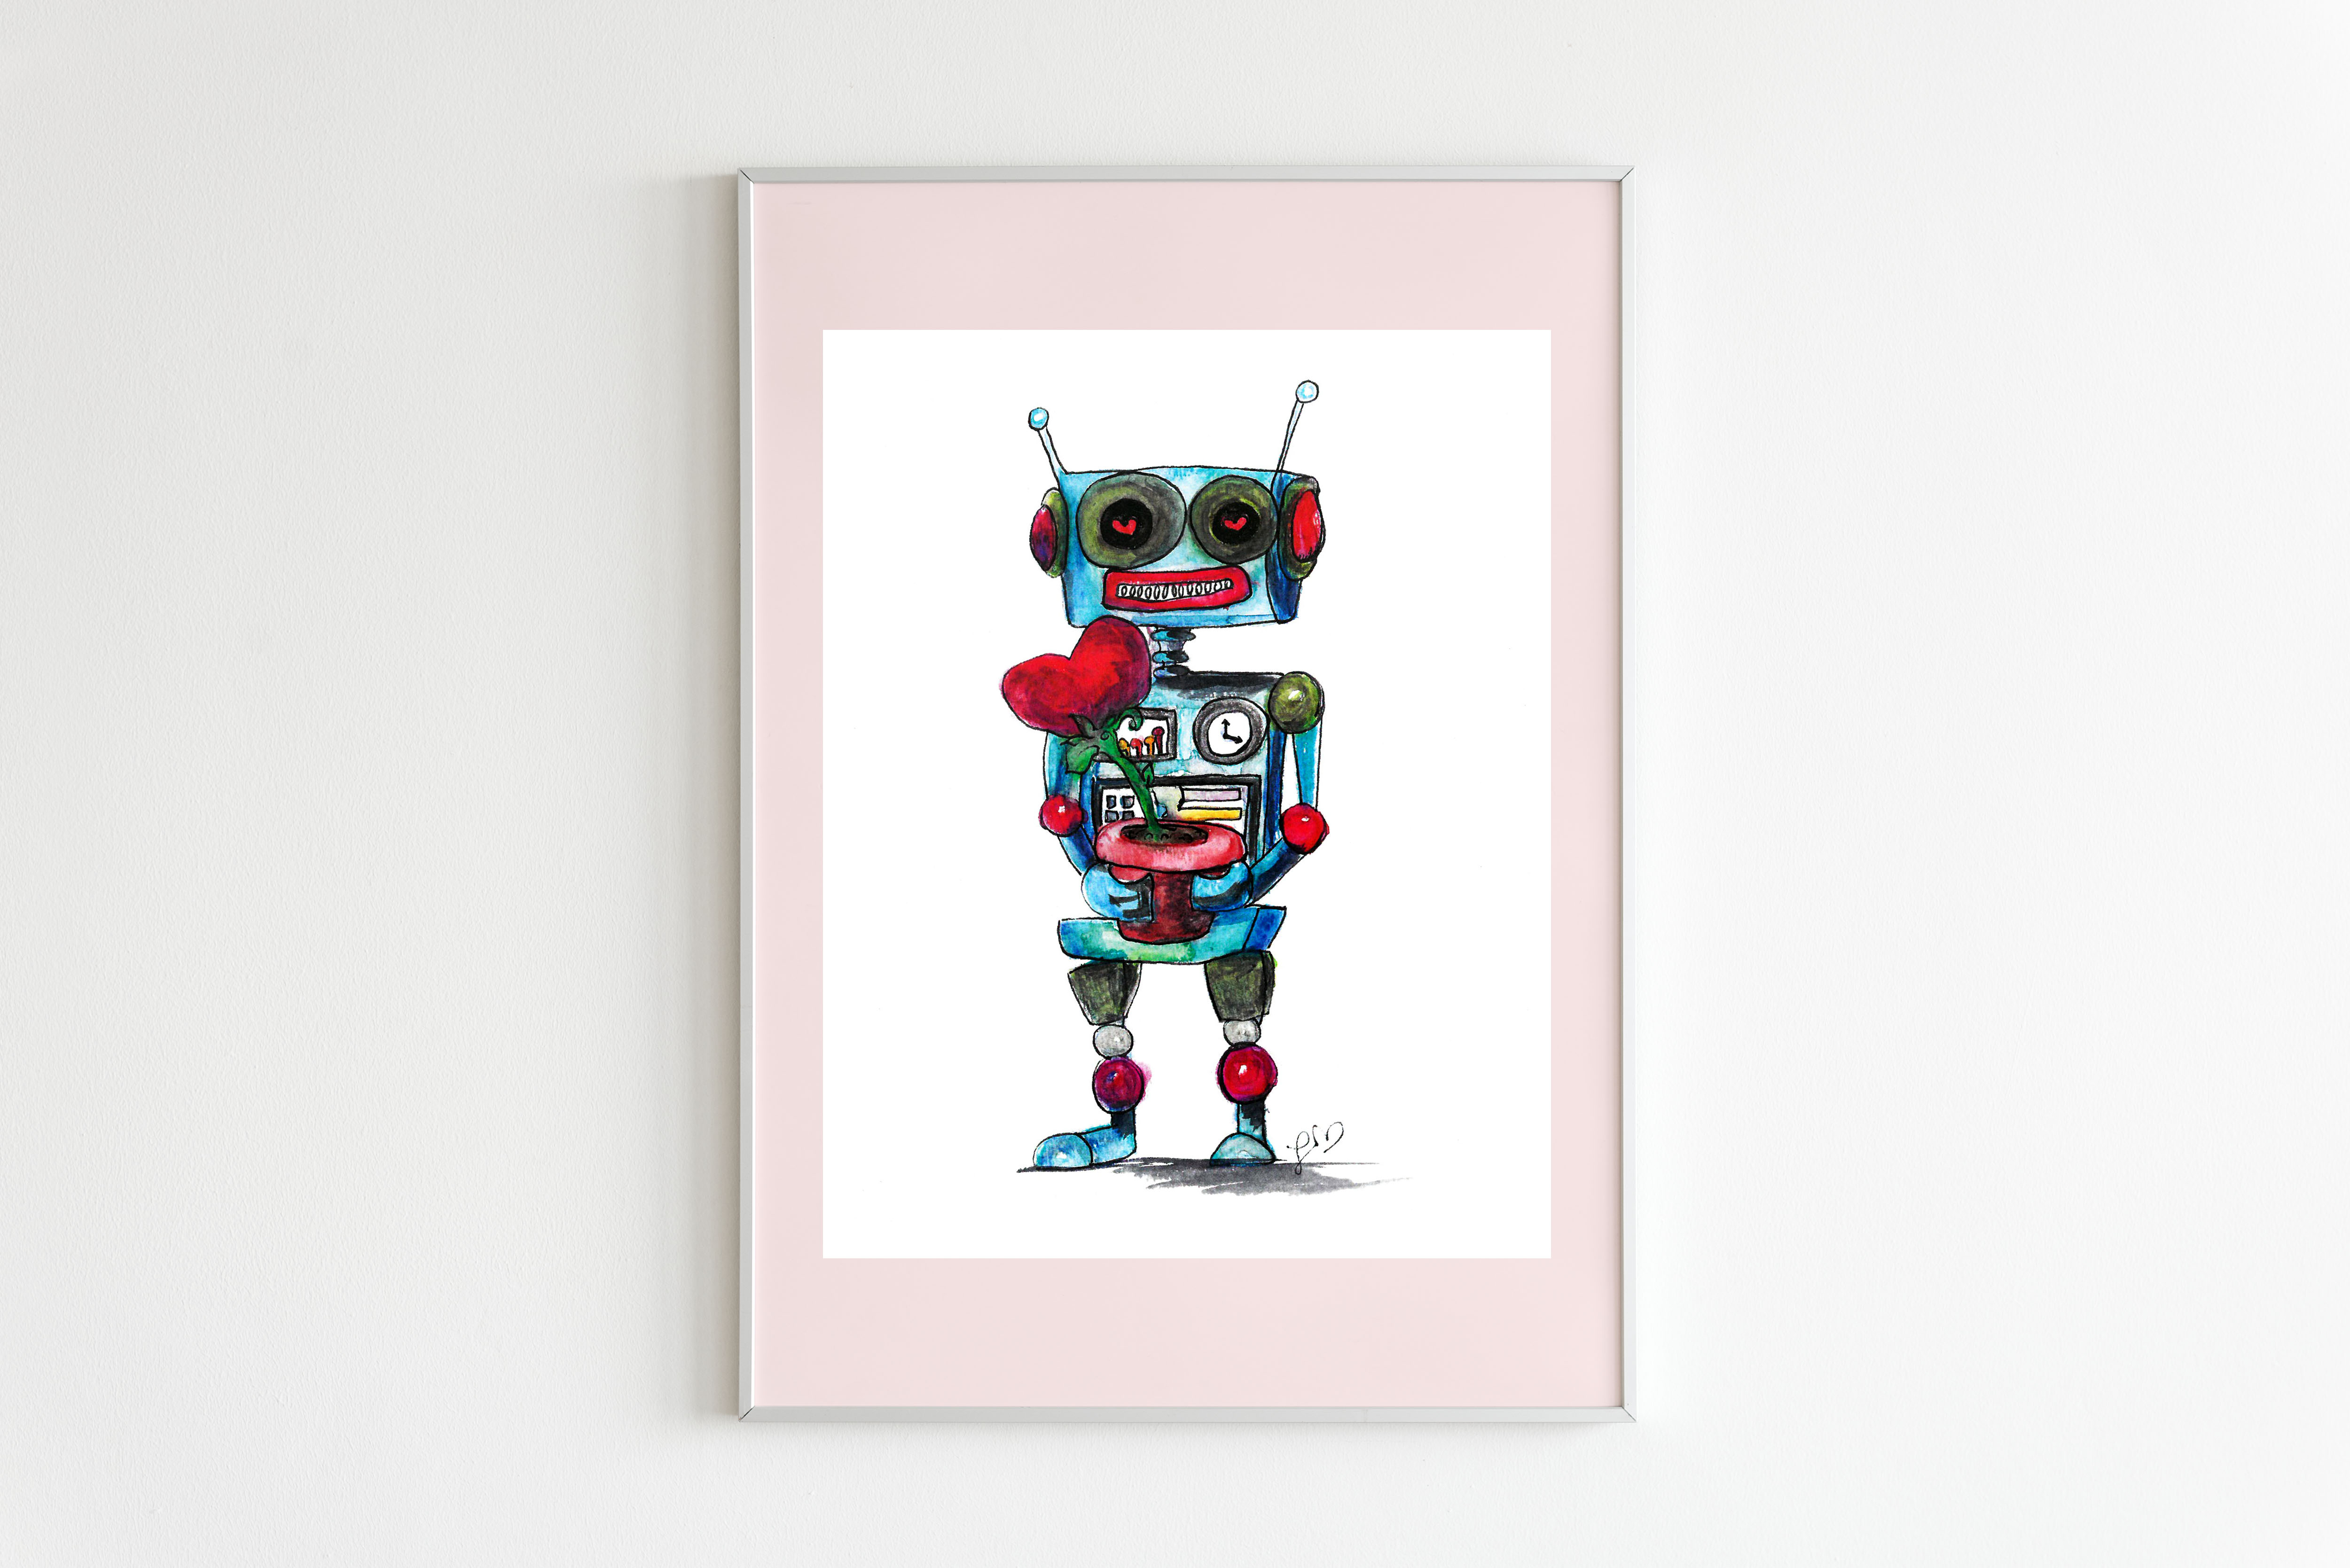 A blue robot with heart eyes holds a potted plant with a pink heart shaped flower inside.